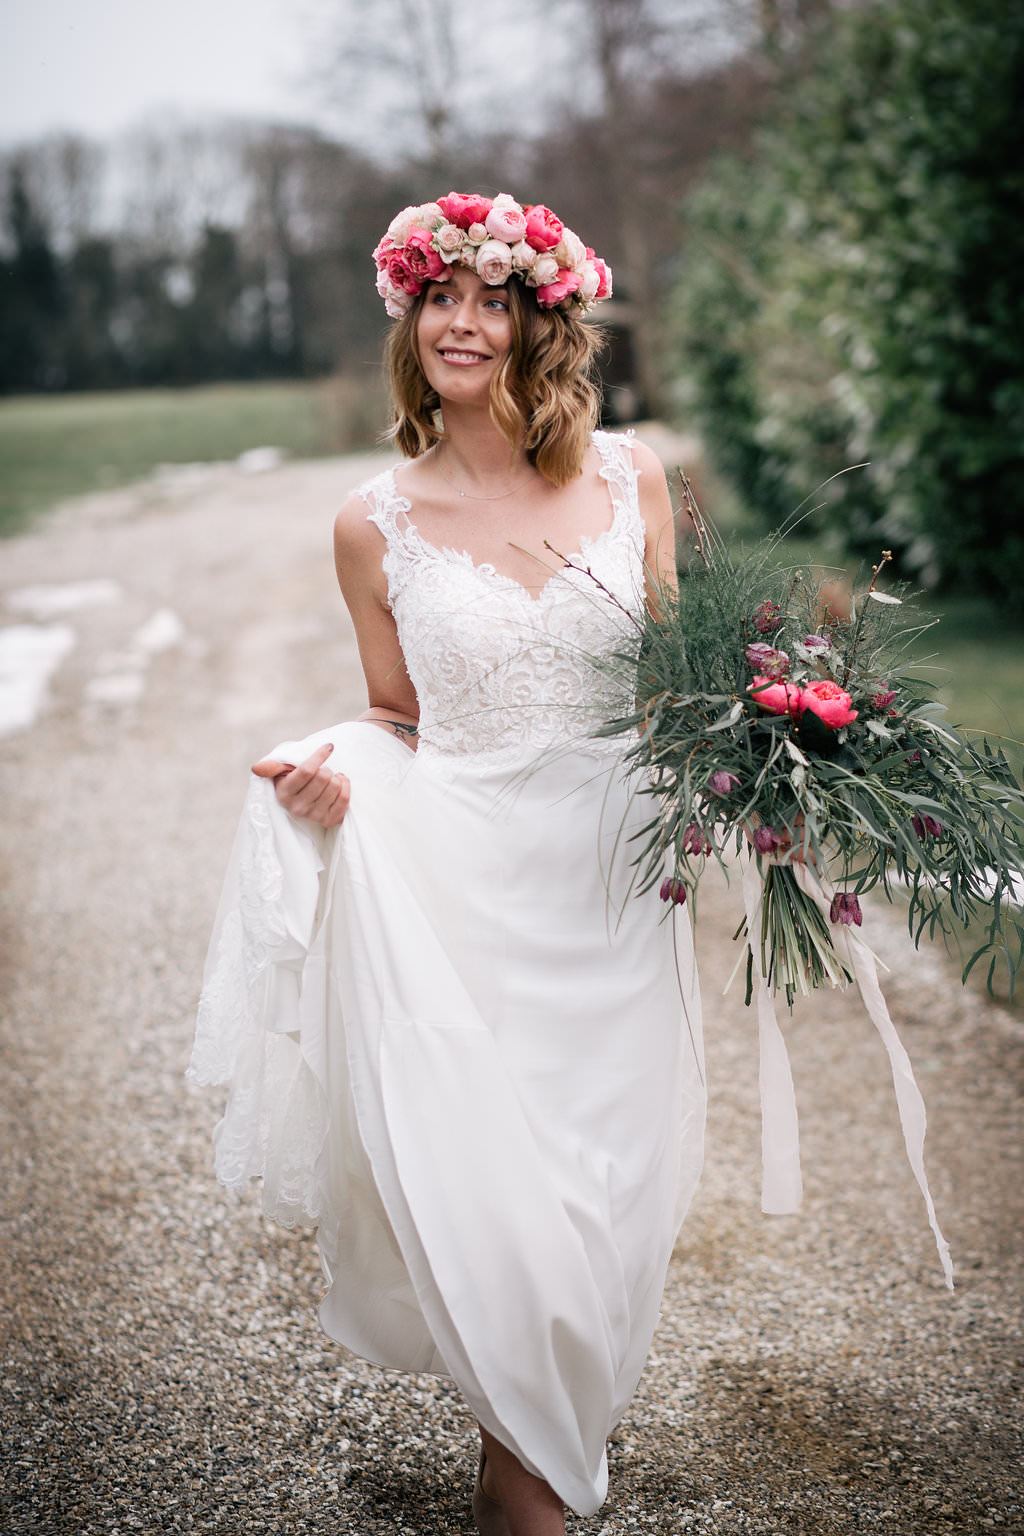 Dress Gown Bride Bridal Lace Straps Train Lapstone Barn Wedding Ideas Cotswolds Katie Hamilton Photography